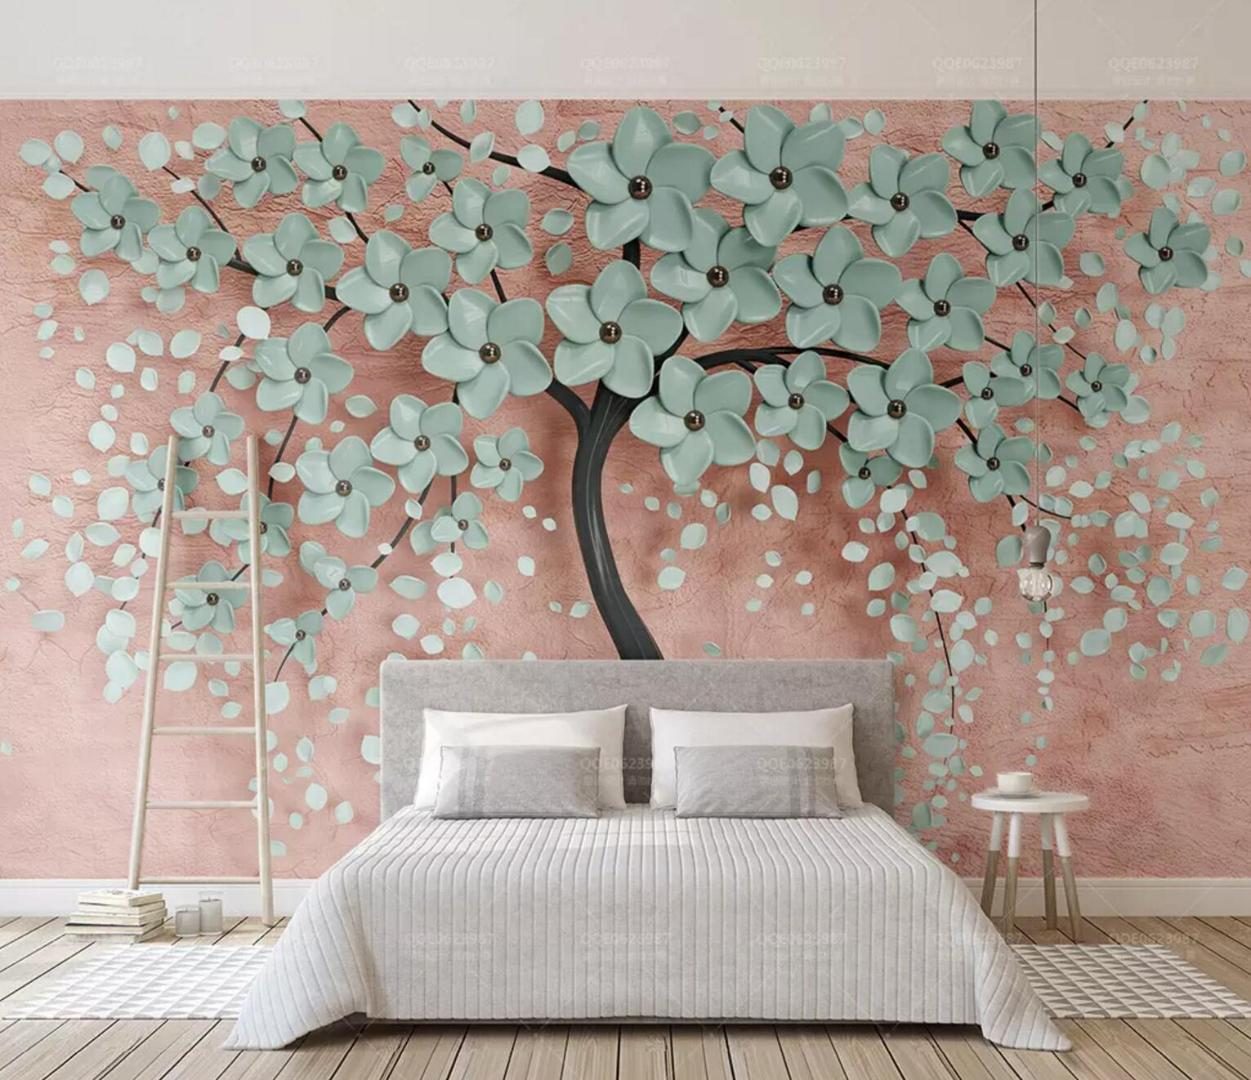 [Self-Adhesive] 3D One Tree Flower 65203 Wall Paper mural Wall Print Decal Murals